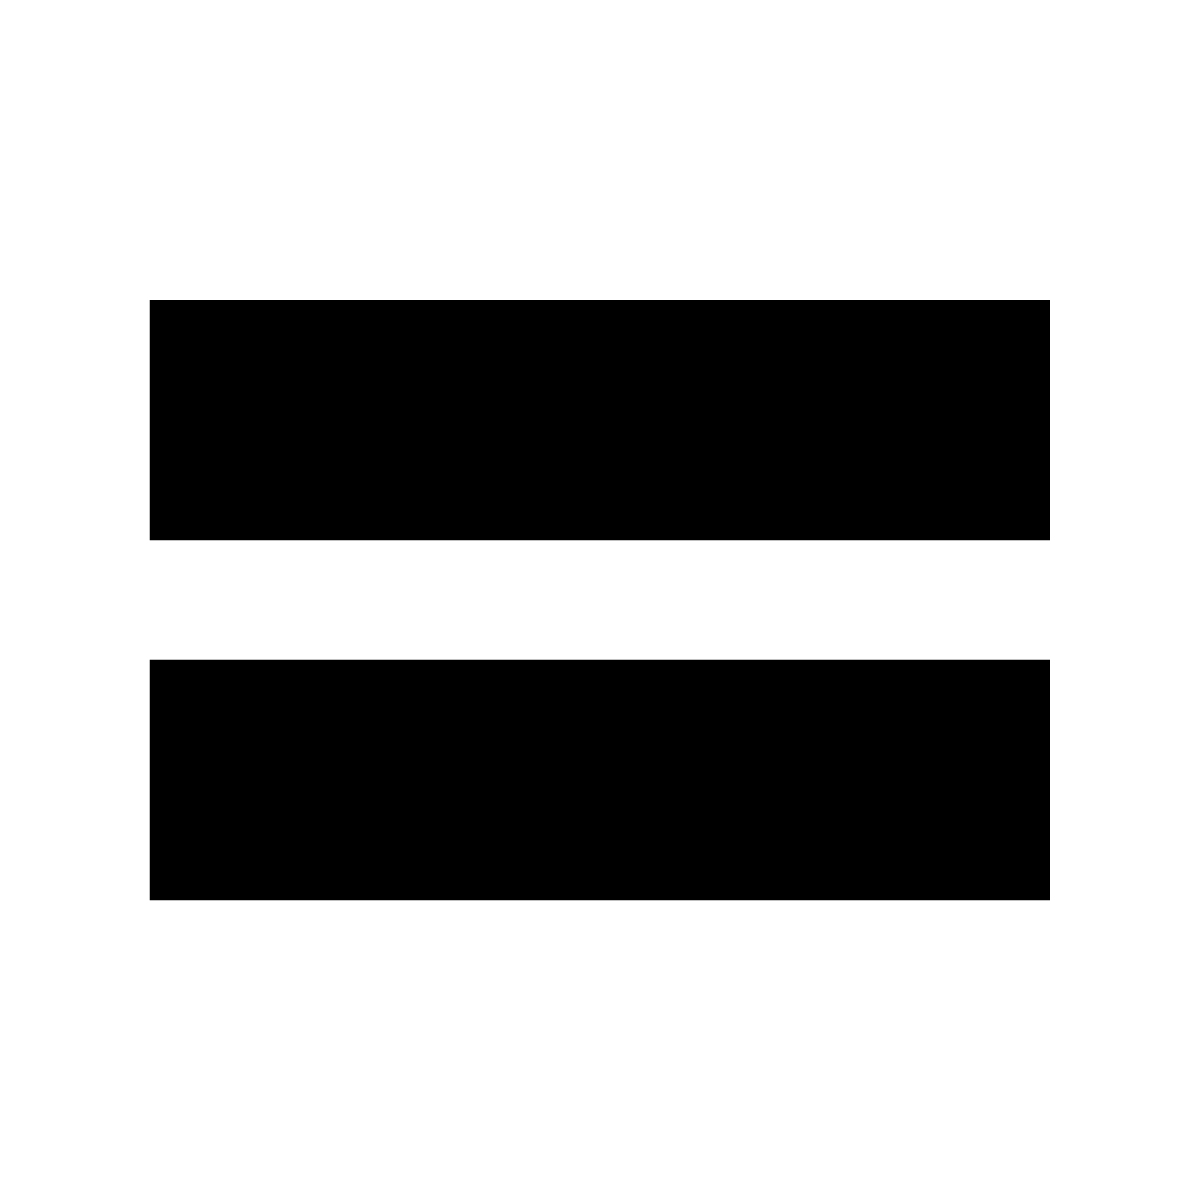 Equal Sign Clip Art